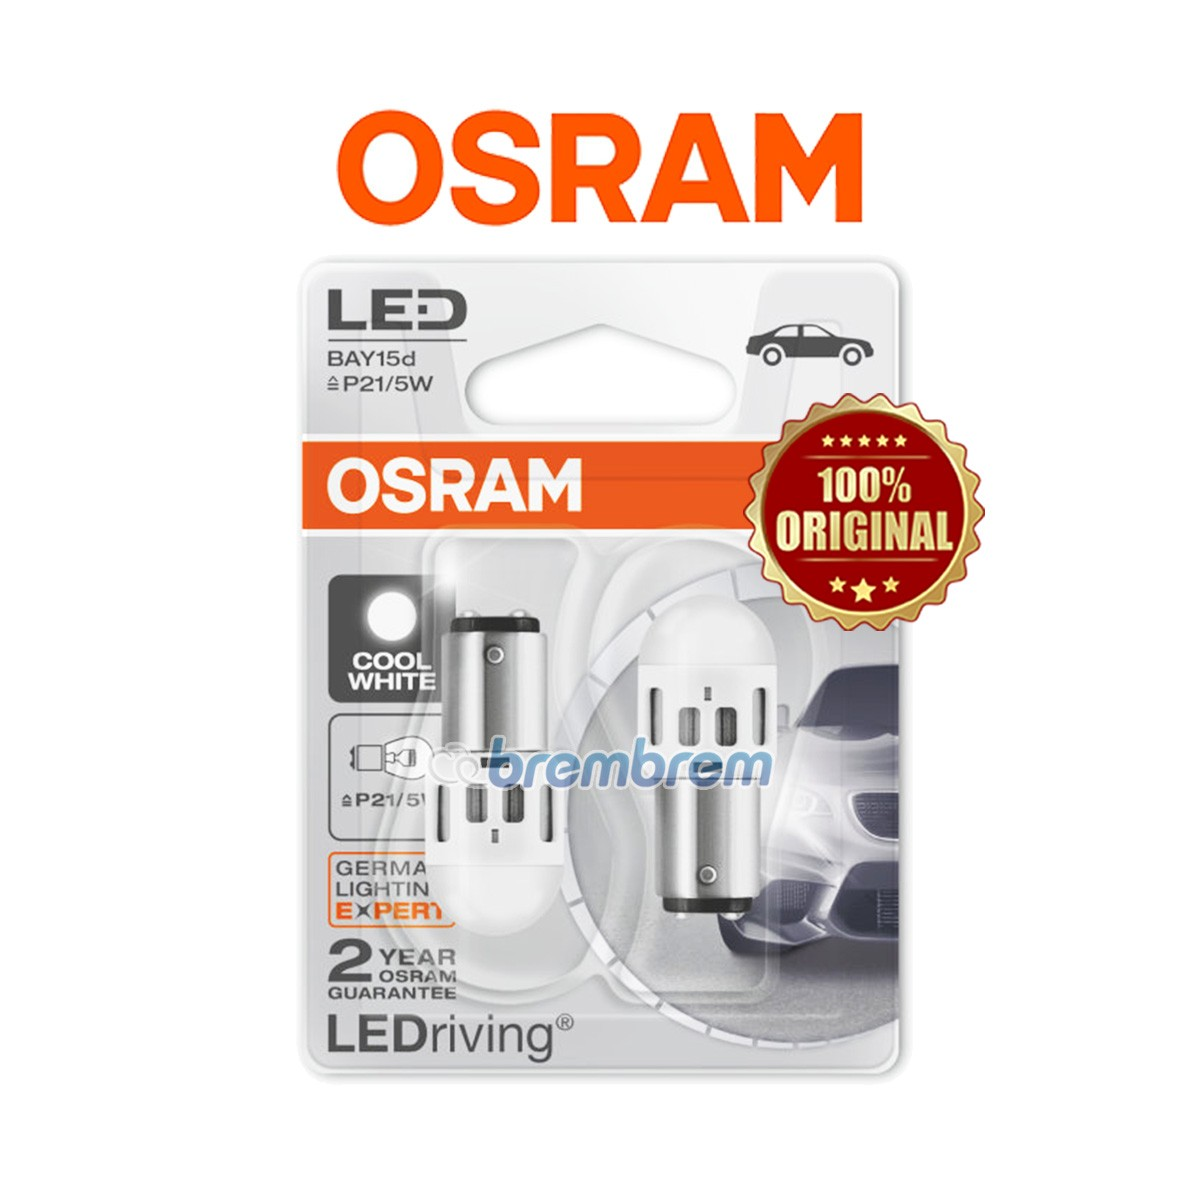 OSRAM RETROFIT 1357 COOL WHITE (6000K) - LAMPU REM LED MOBIL